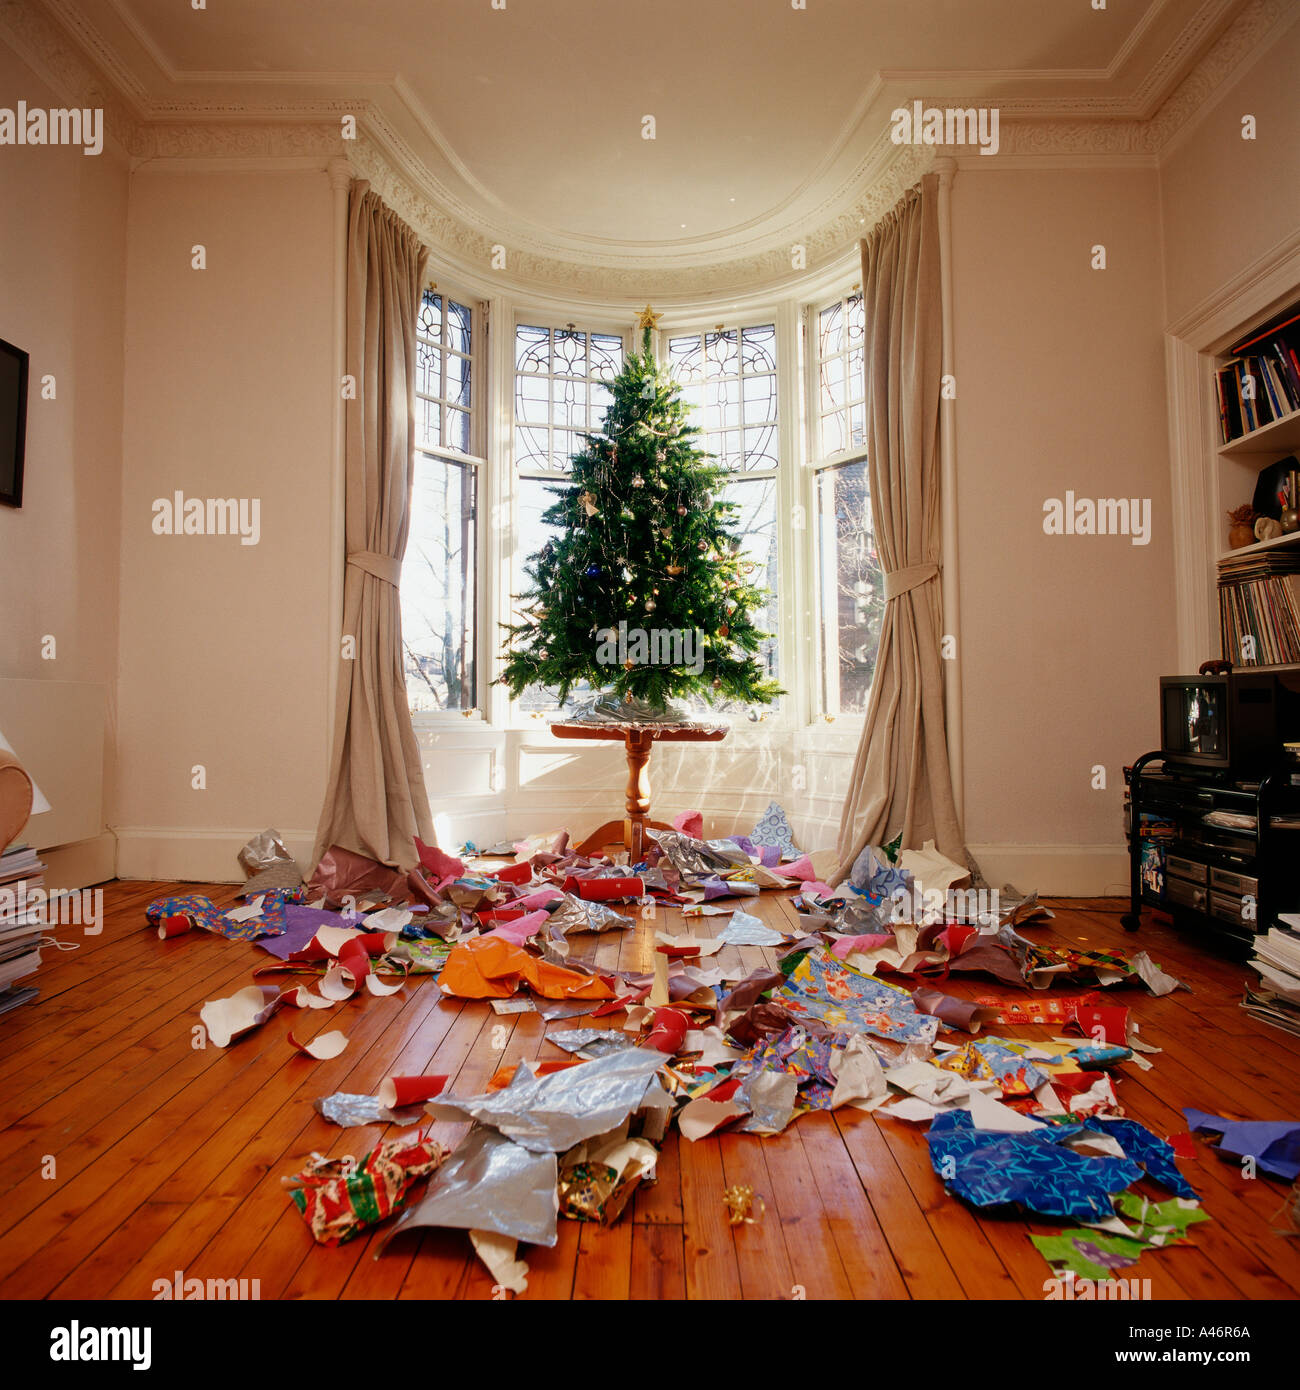 Messy Room: Messy Living Room At Christmas Stock Photo: 3575657